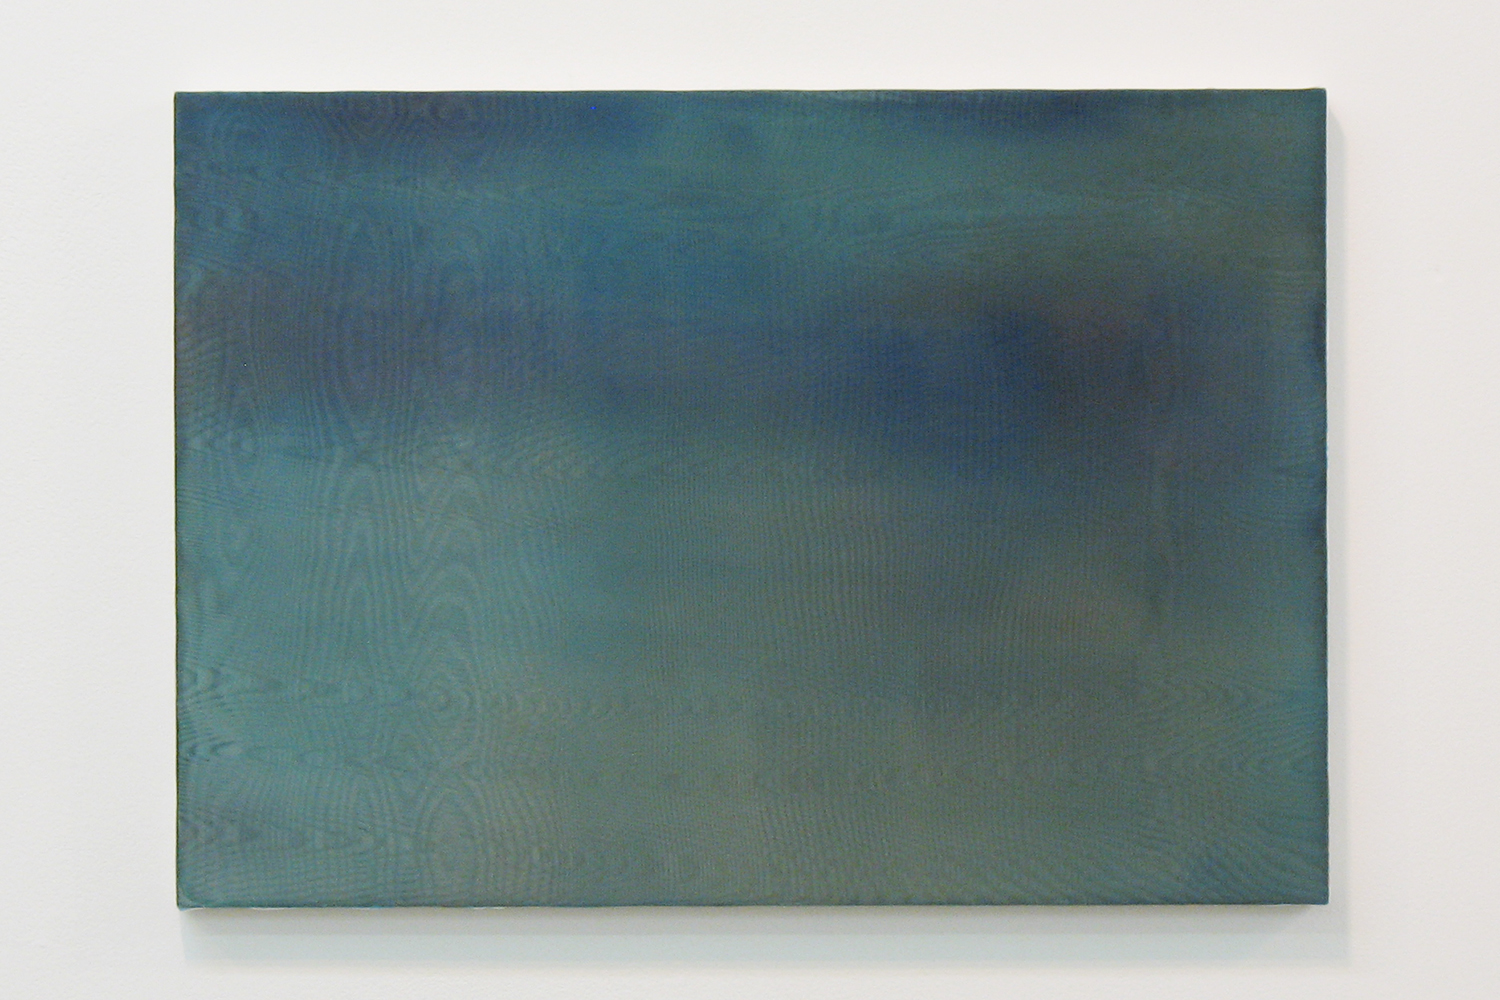 中空 0908 (hollowness 0908)|panel, stainless steel sheet, glass organdy, acrylic|363  x 515 mm|2009